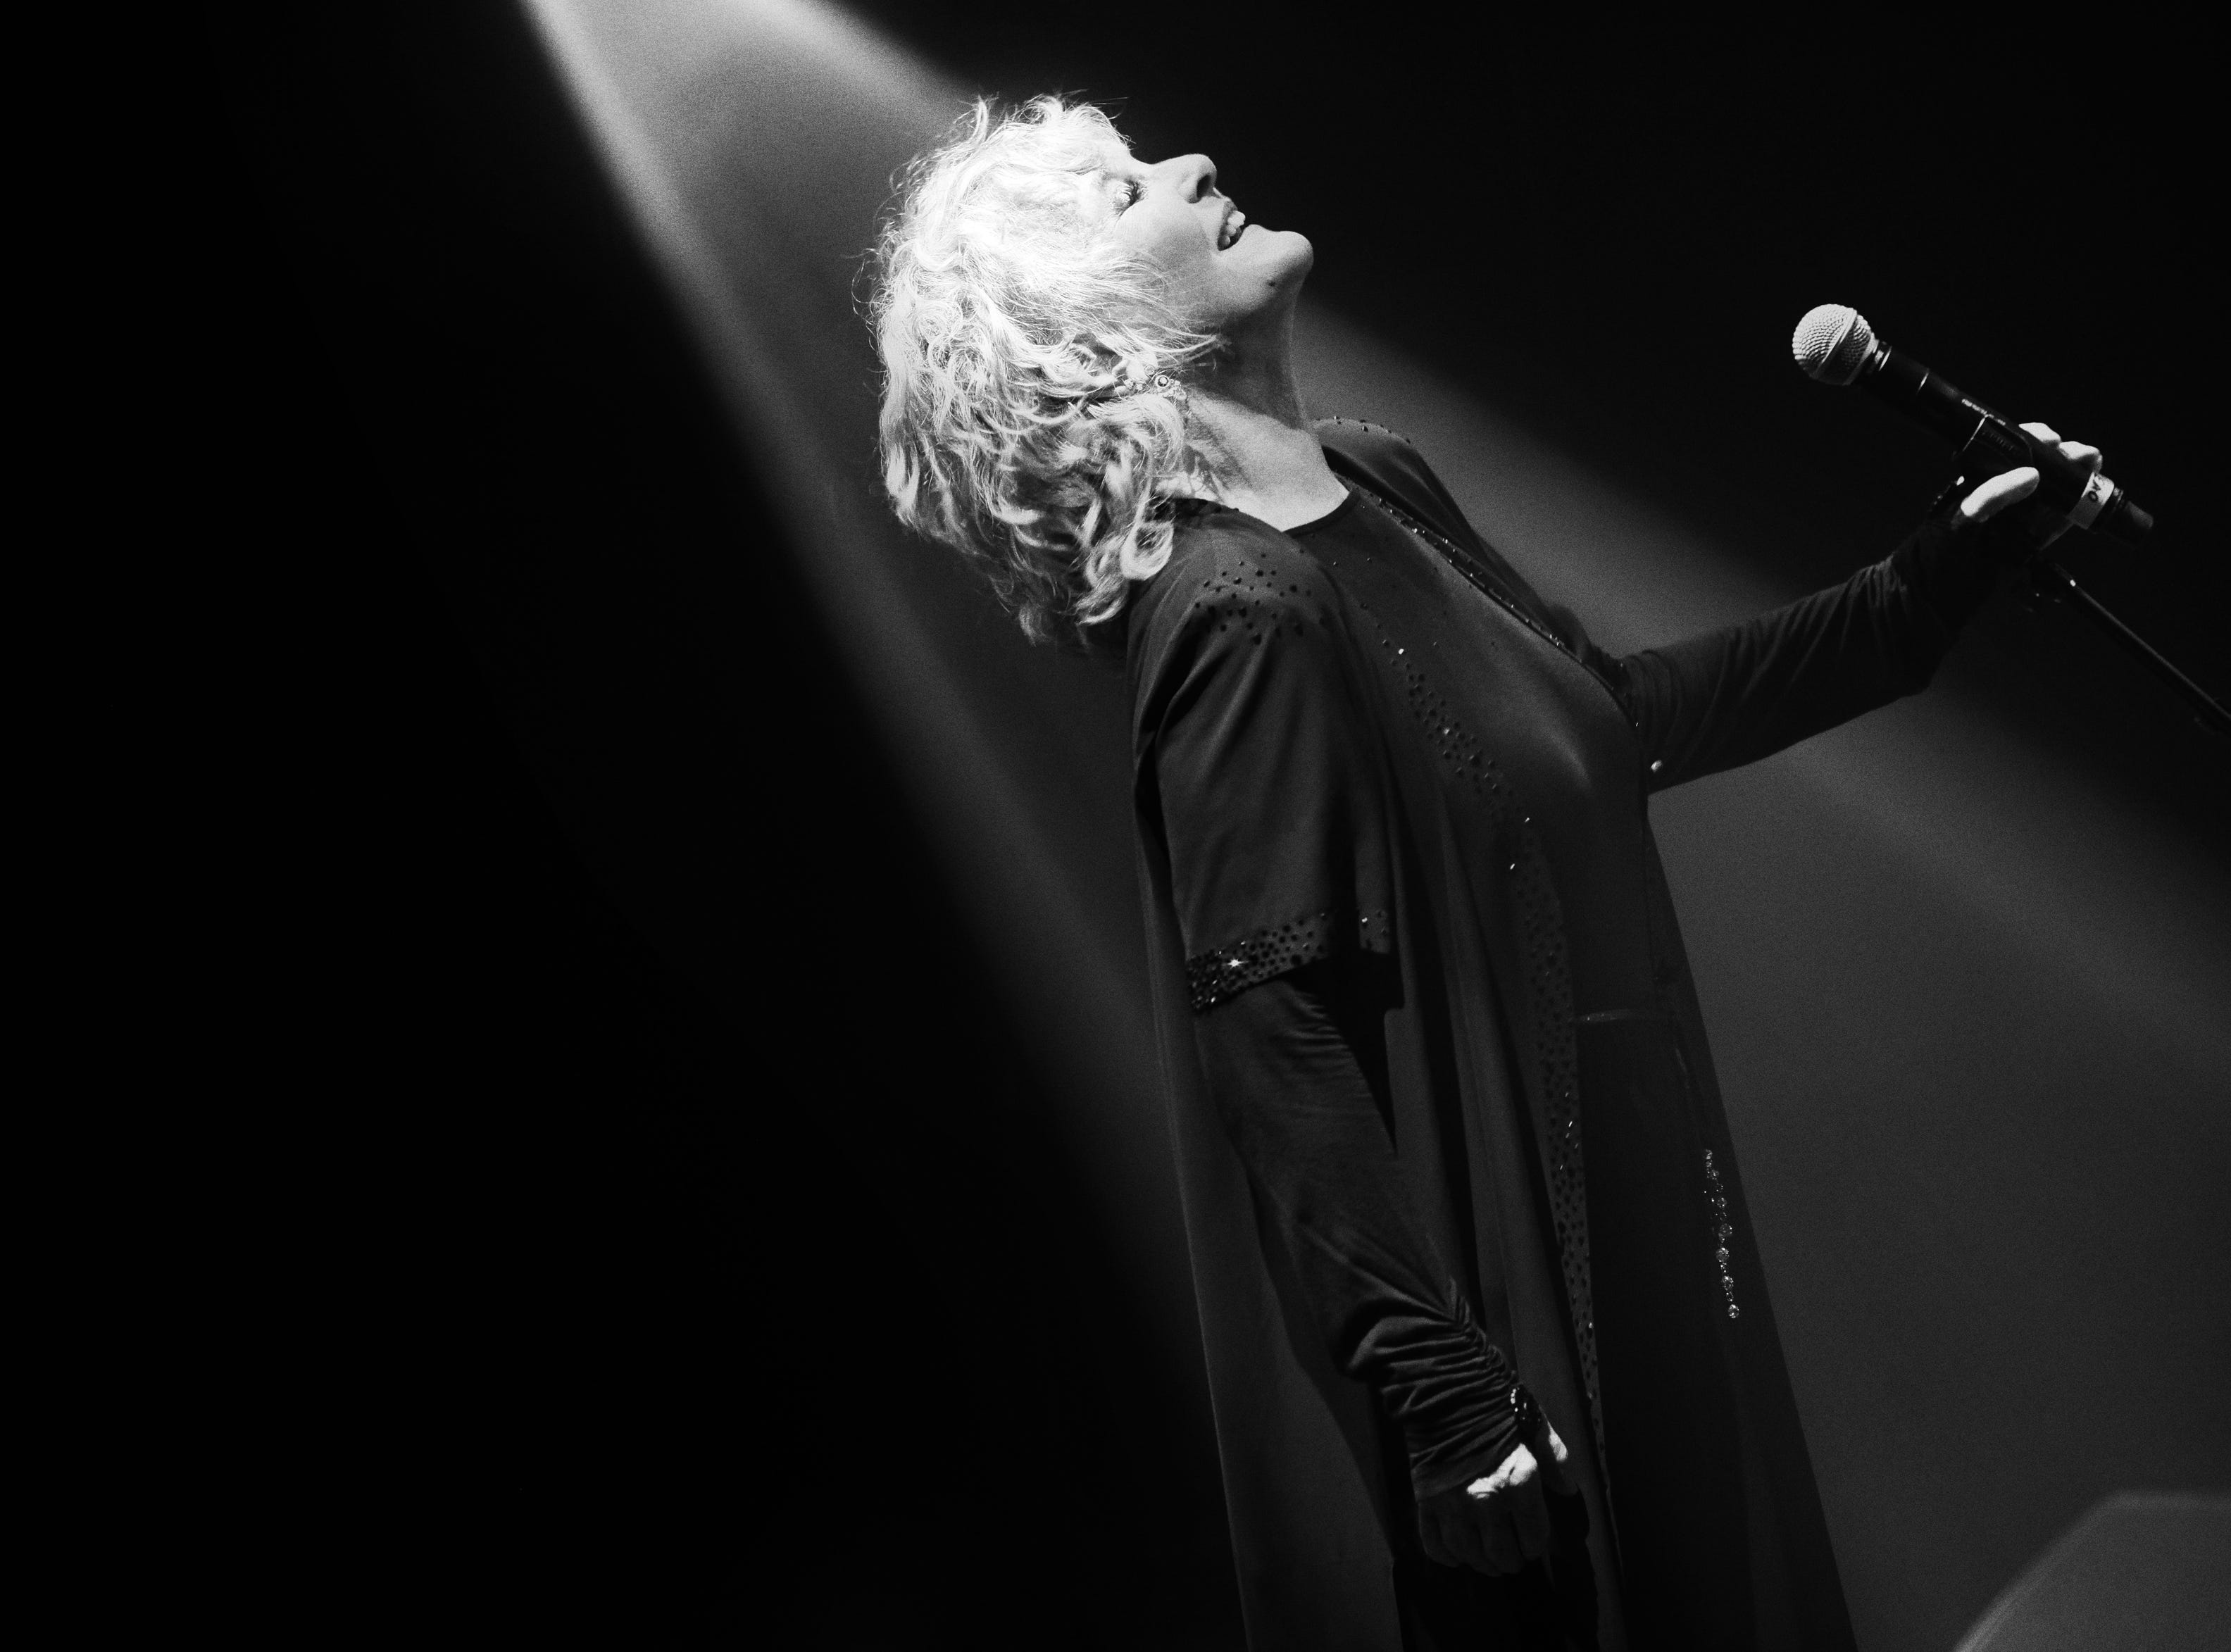 """""""There's nothing quite like that something that happens between an audience and performer,"""" Petula Clark says of performing live."""